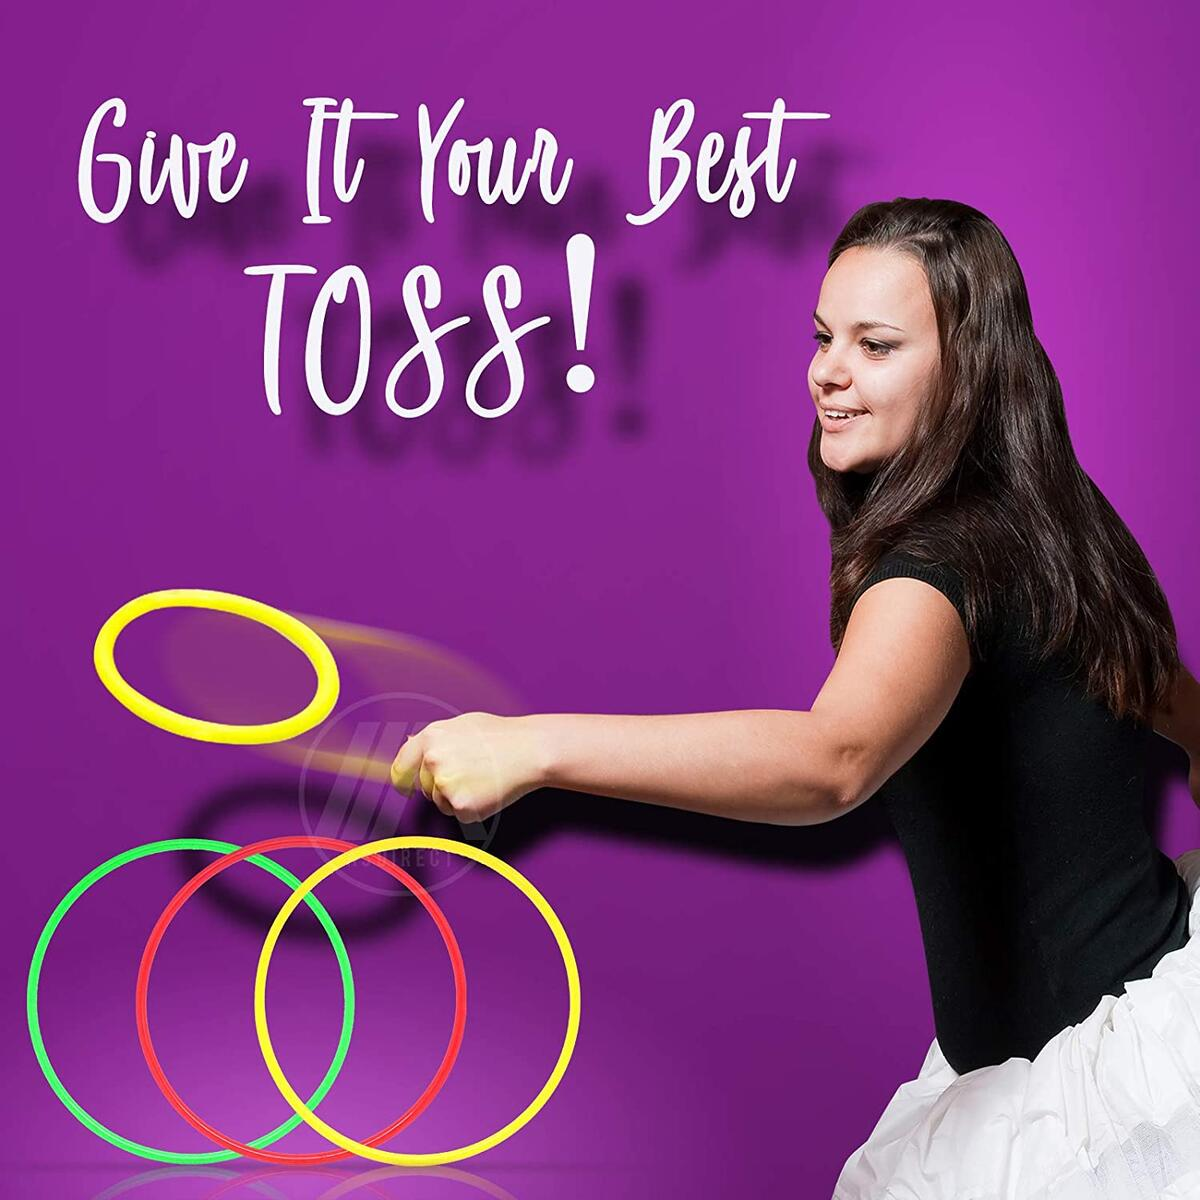 "Inflatable Banana Ring Toss Bachelorette Party Games - Bridal Shower Game, Decorations and Supplies for Engagement Parties, Girls Night Out & Bride to Be Favors - 26"" Banana with 3 Rings for Tossing"